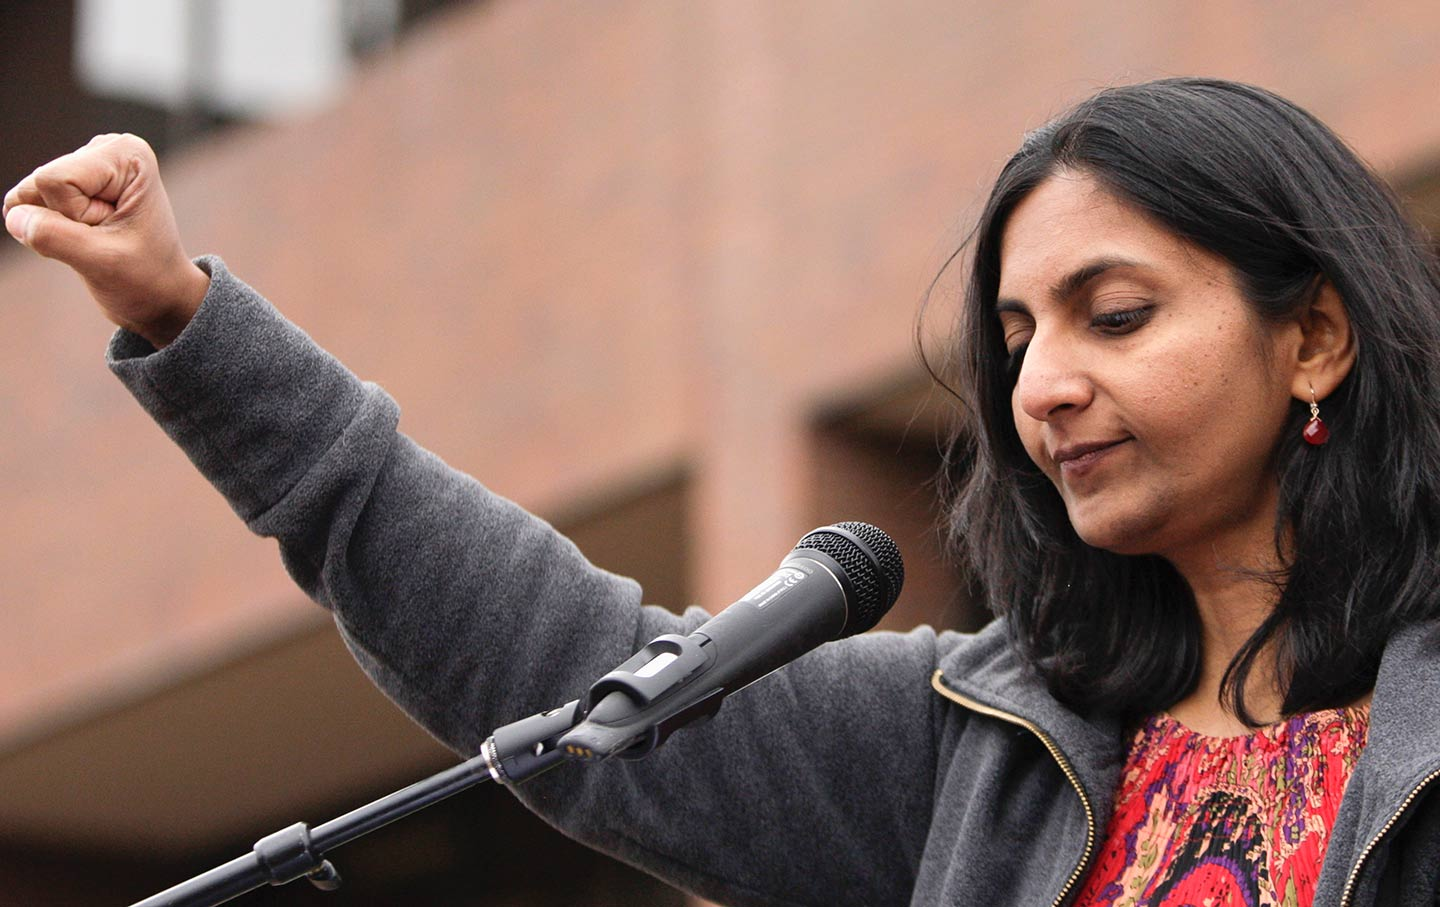 Kshama Sawant Fight for 15